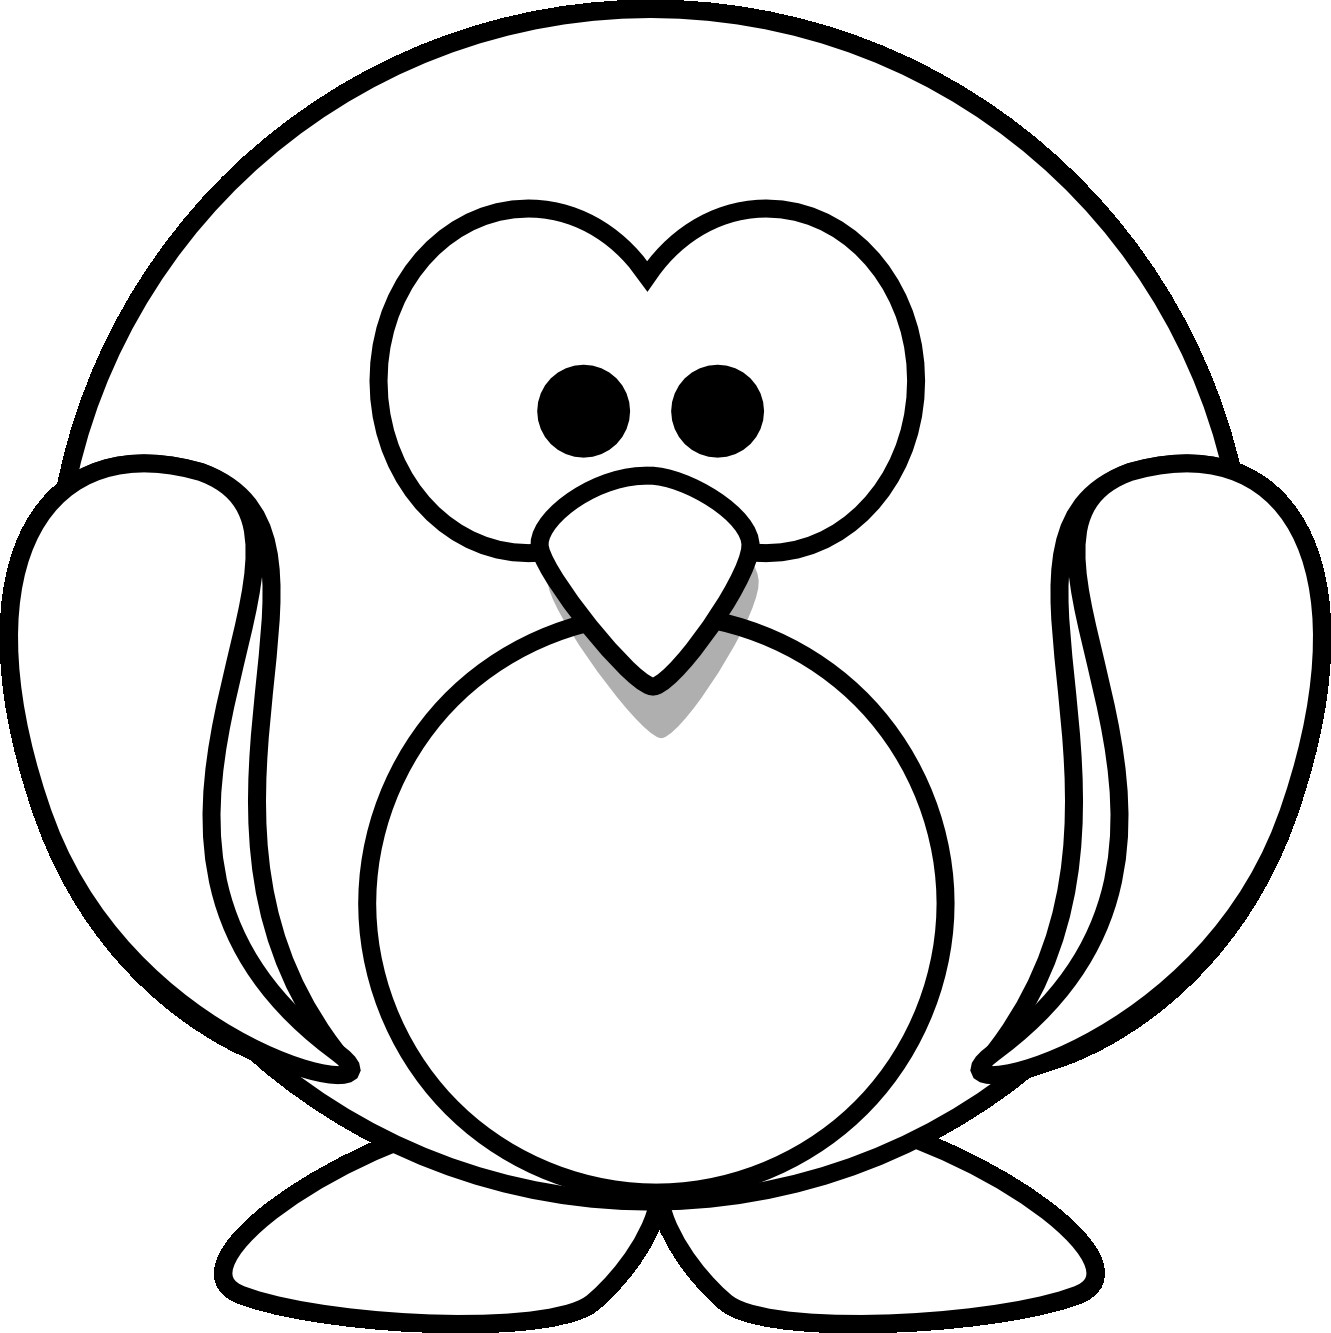 1331x1333 Cartoon Penguin Coloring Pages Free Download Clip Art Fancy Cute